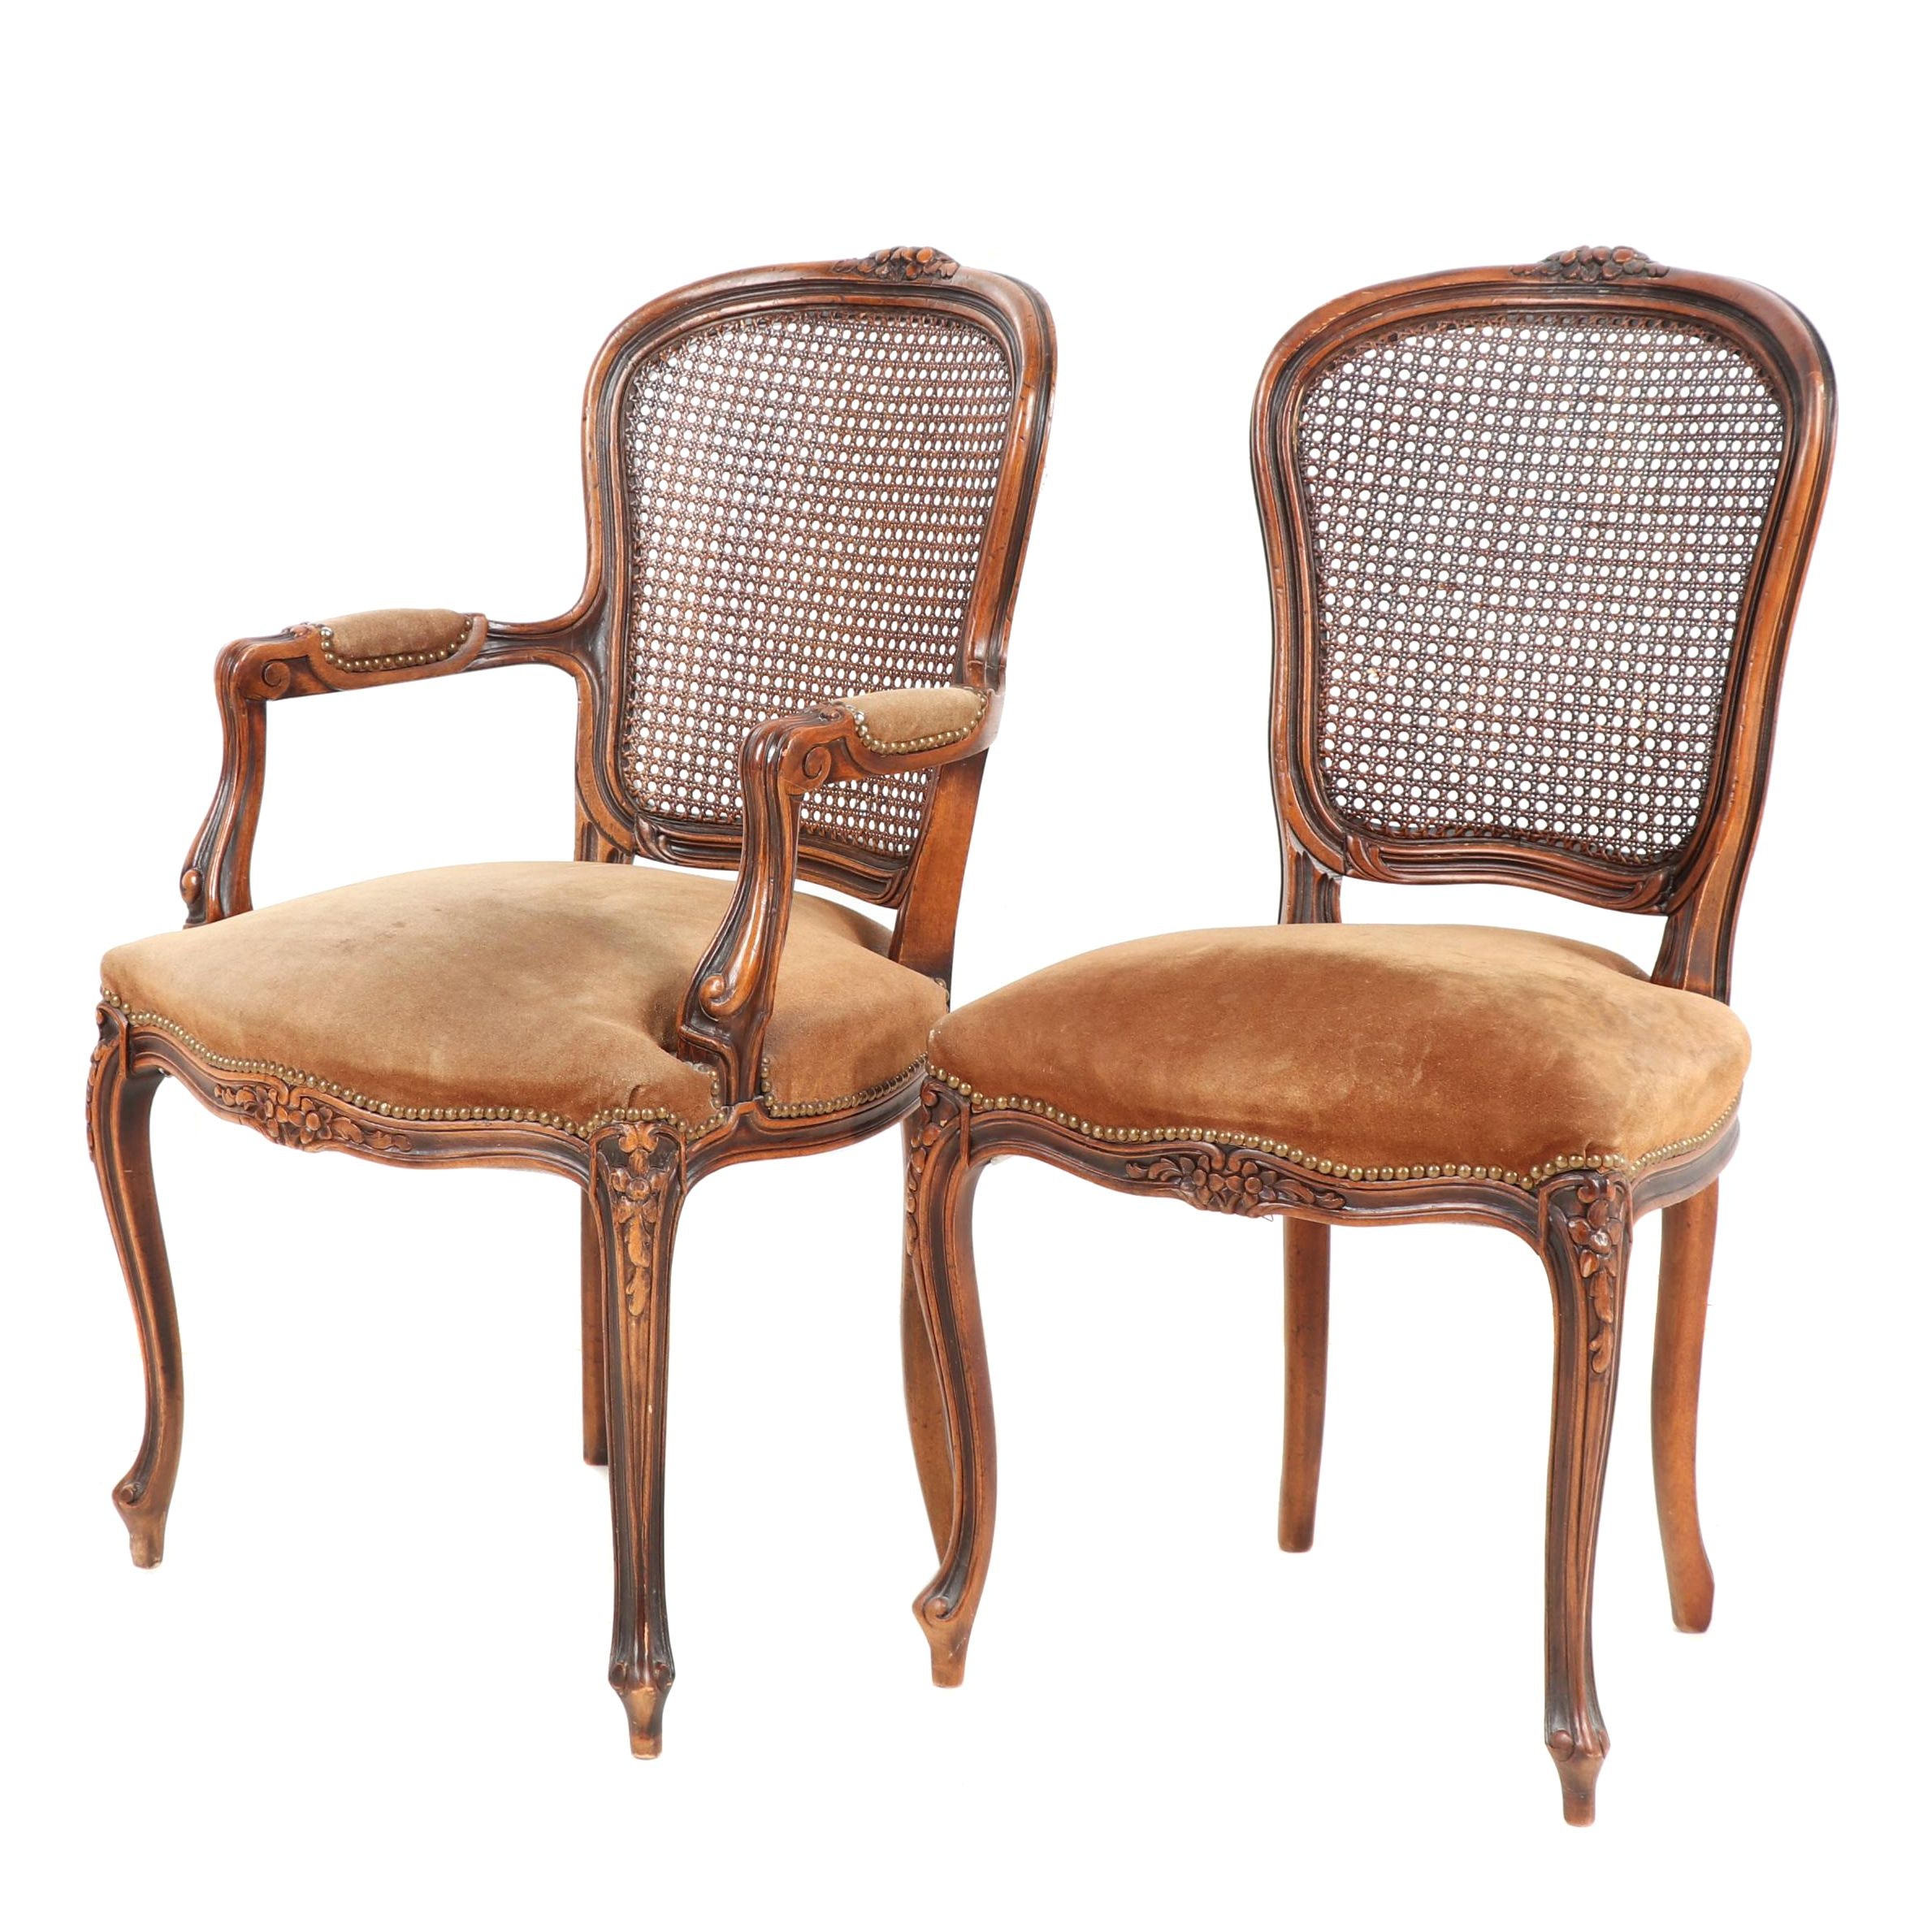 Pair of Caneback Suede Upholstered Chairs, Mid 20th Century